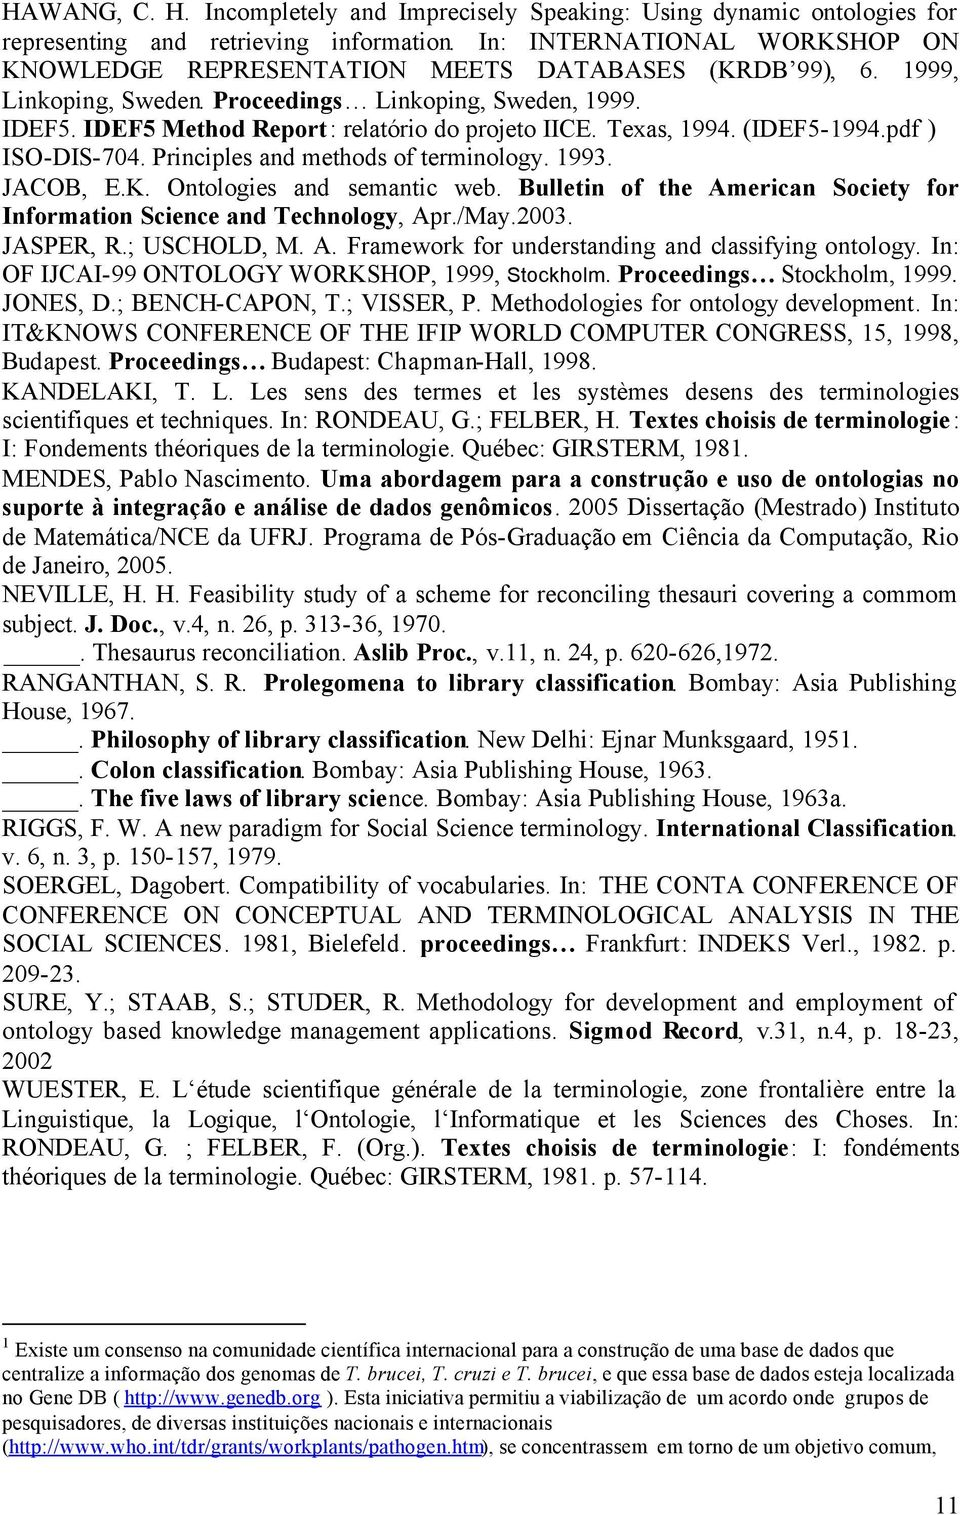 IDEF5 Method Report: relatório do projeto IICE. Texas, 1994. (IDEF5-1994.pdf ) ISO-DIS-704. Principles and methods of terminology. 1993. JACOB, E.K. Ontologies and semantic web.